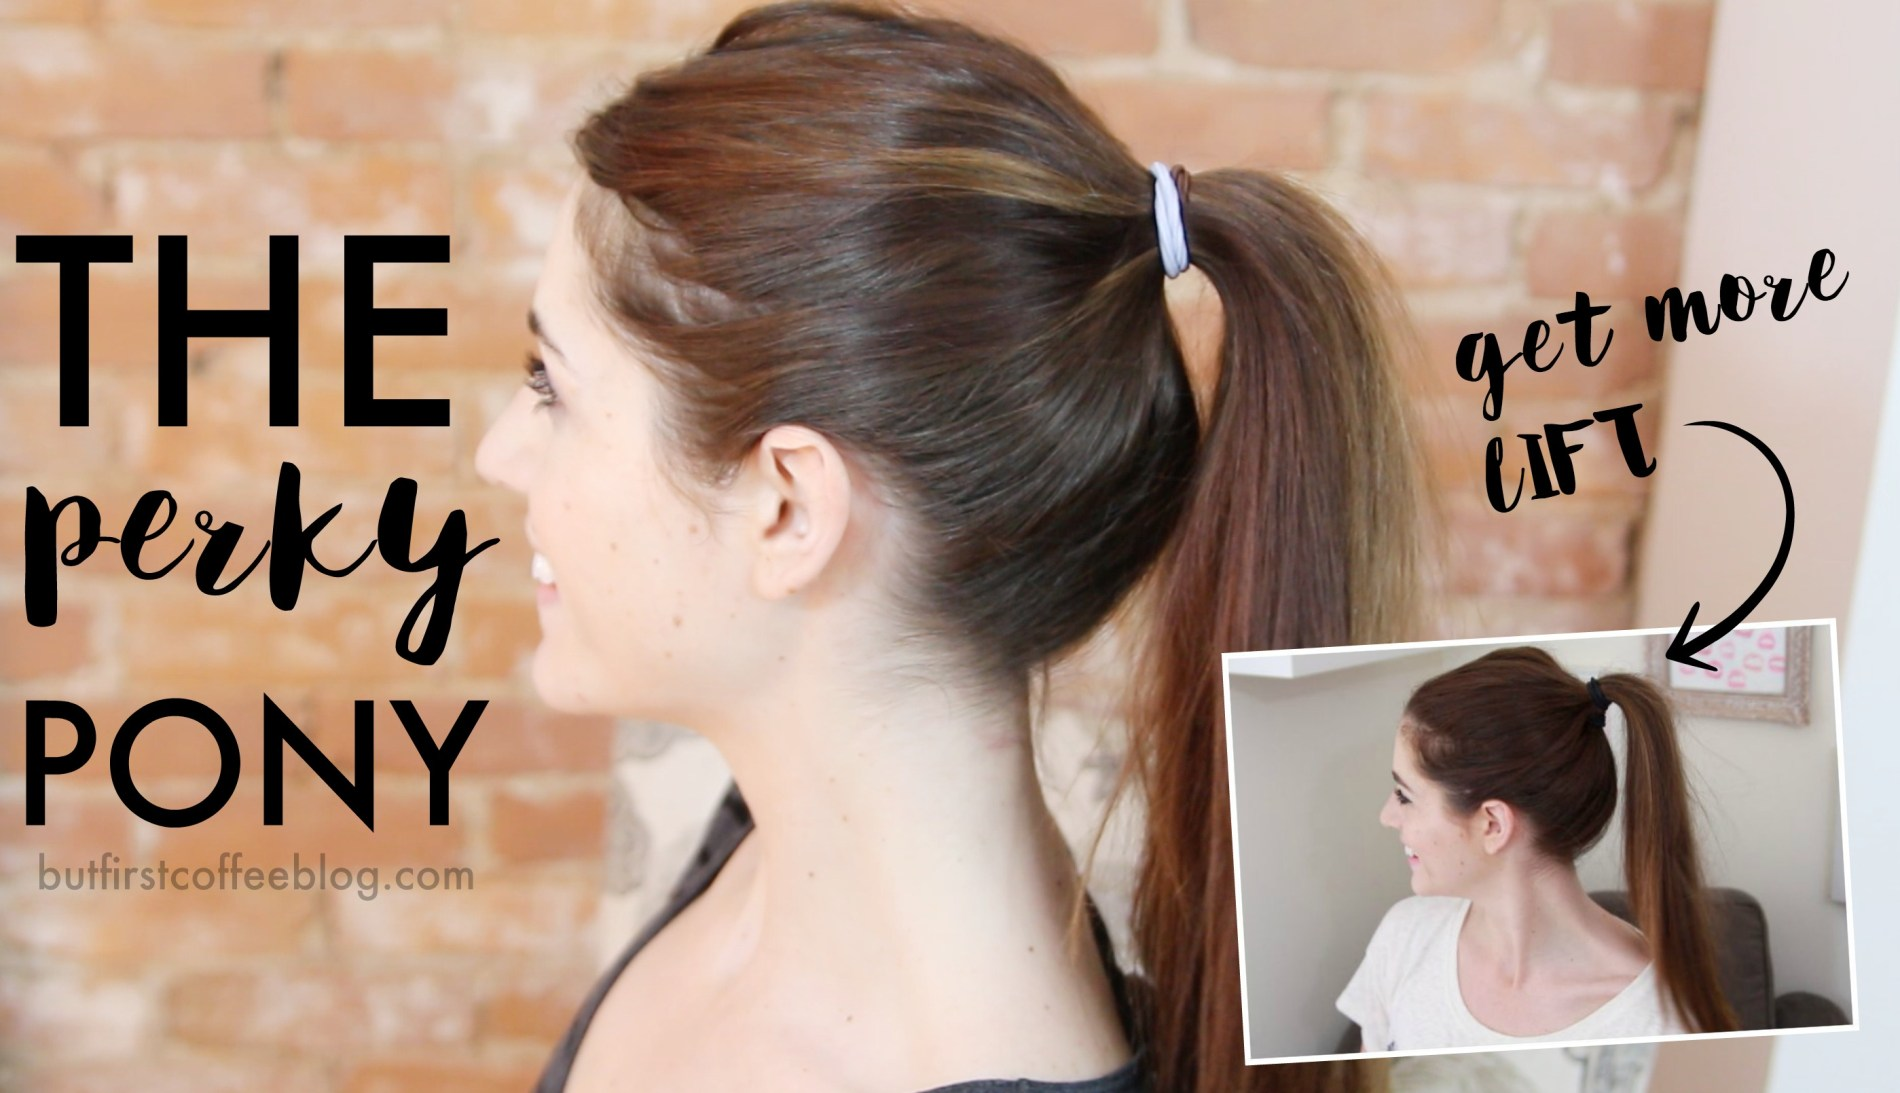 Different Ponytail Ideas - Perky Ponytail